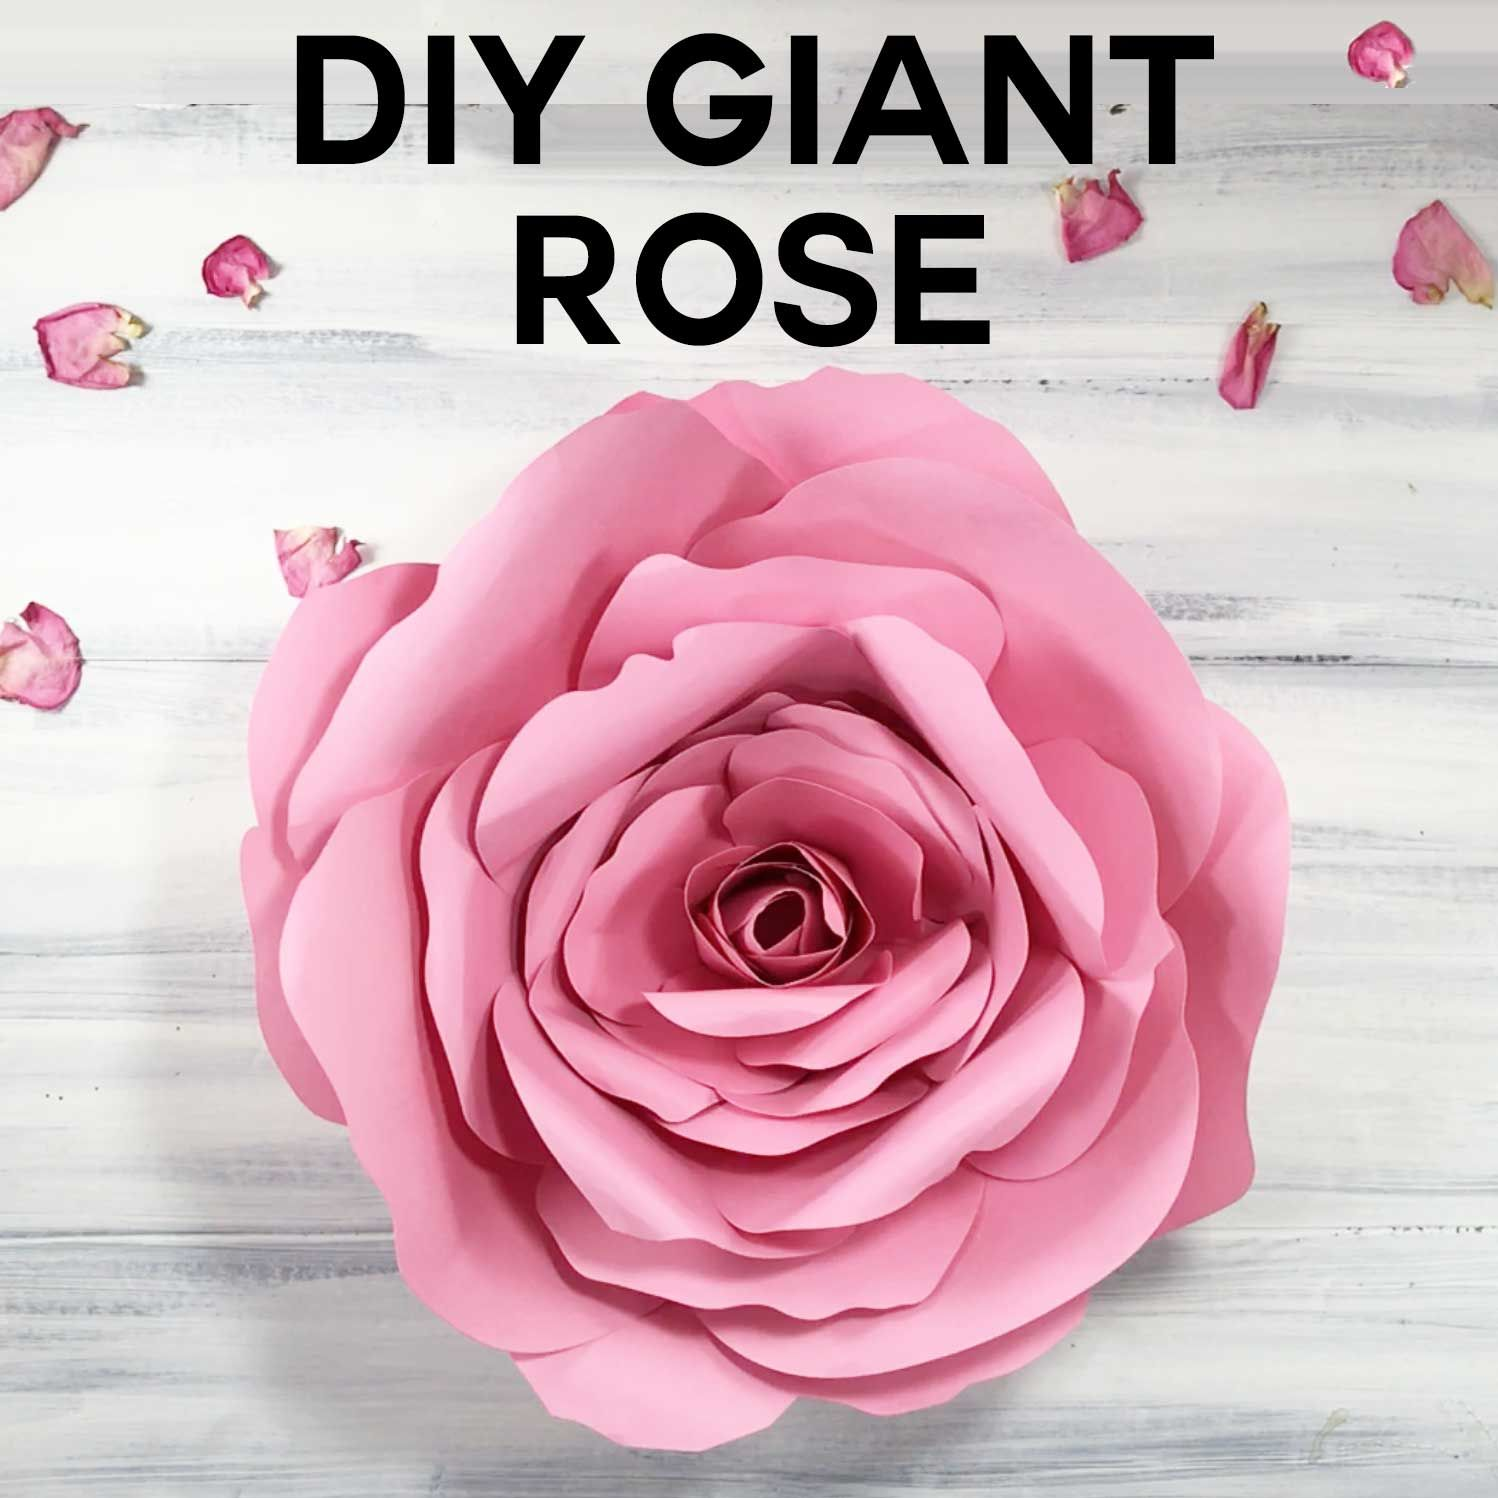 Giant Flower Spellbound Rose Every Petal Is Unique Pinterest